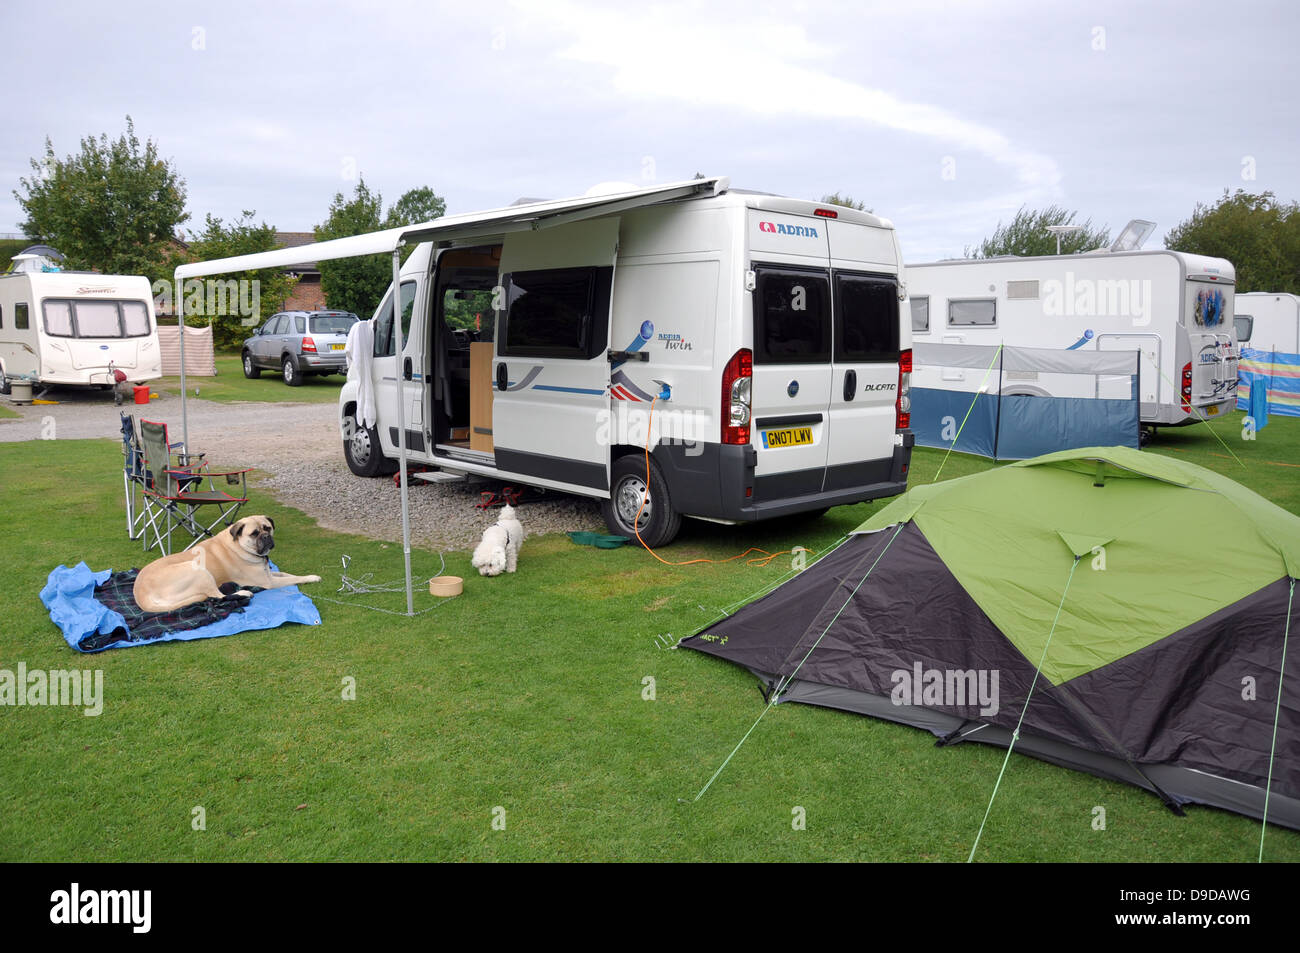 A motorhome, tent and dogs on their camping pitch in Sussex, England, UK. Caravans in the background. - Stock Image